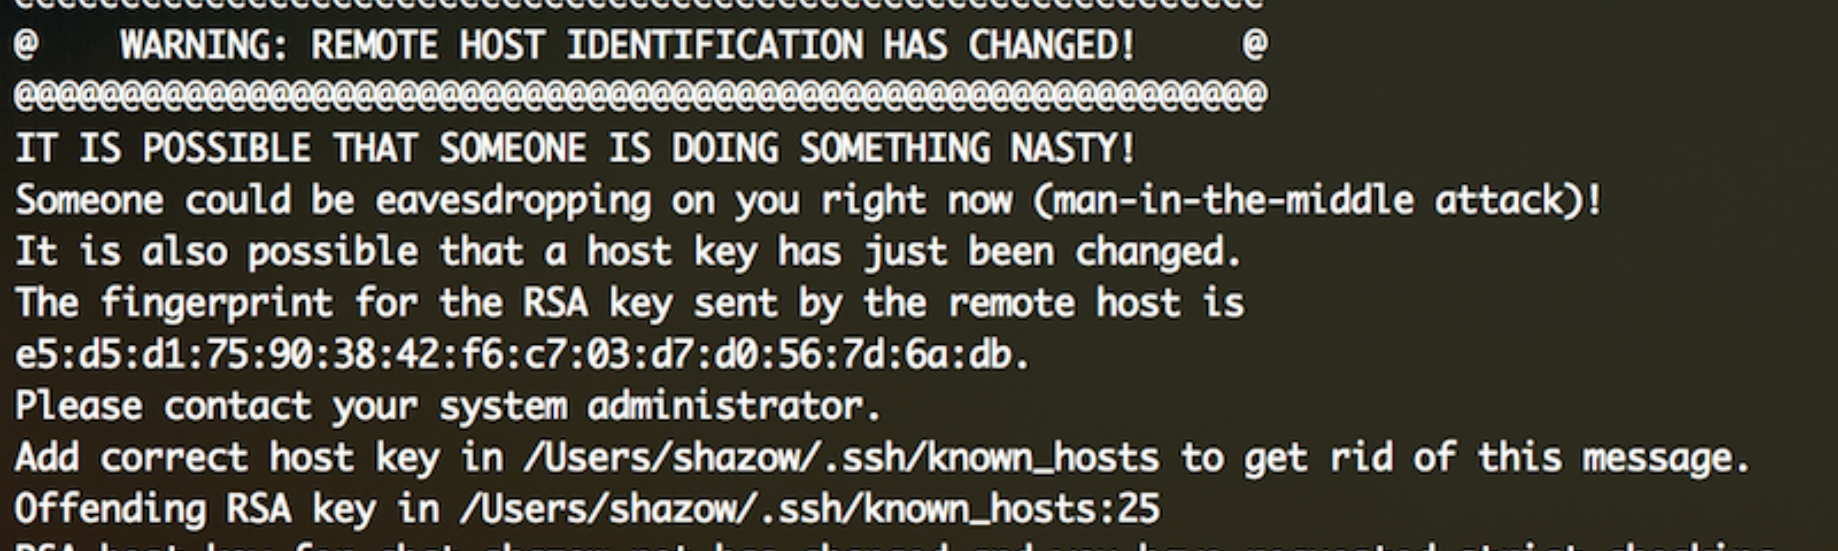 Why aren't we using SSH for everything? - Andrey Petrov - Medium